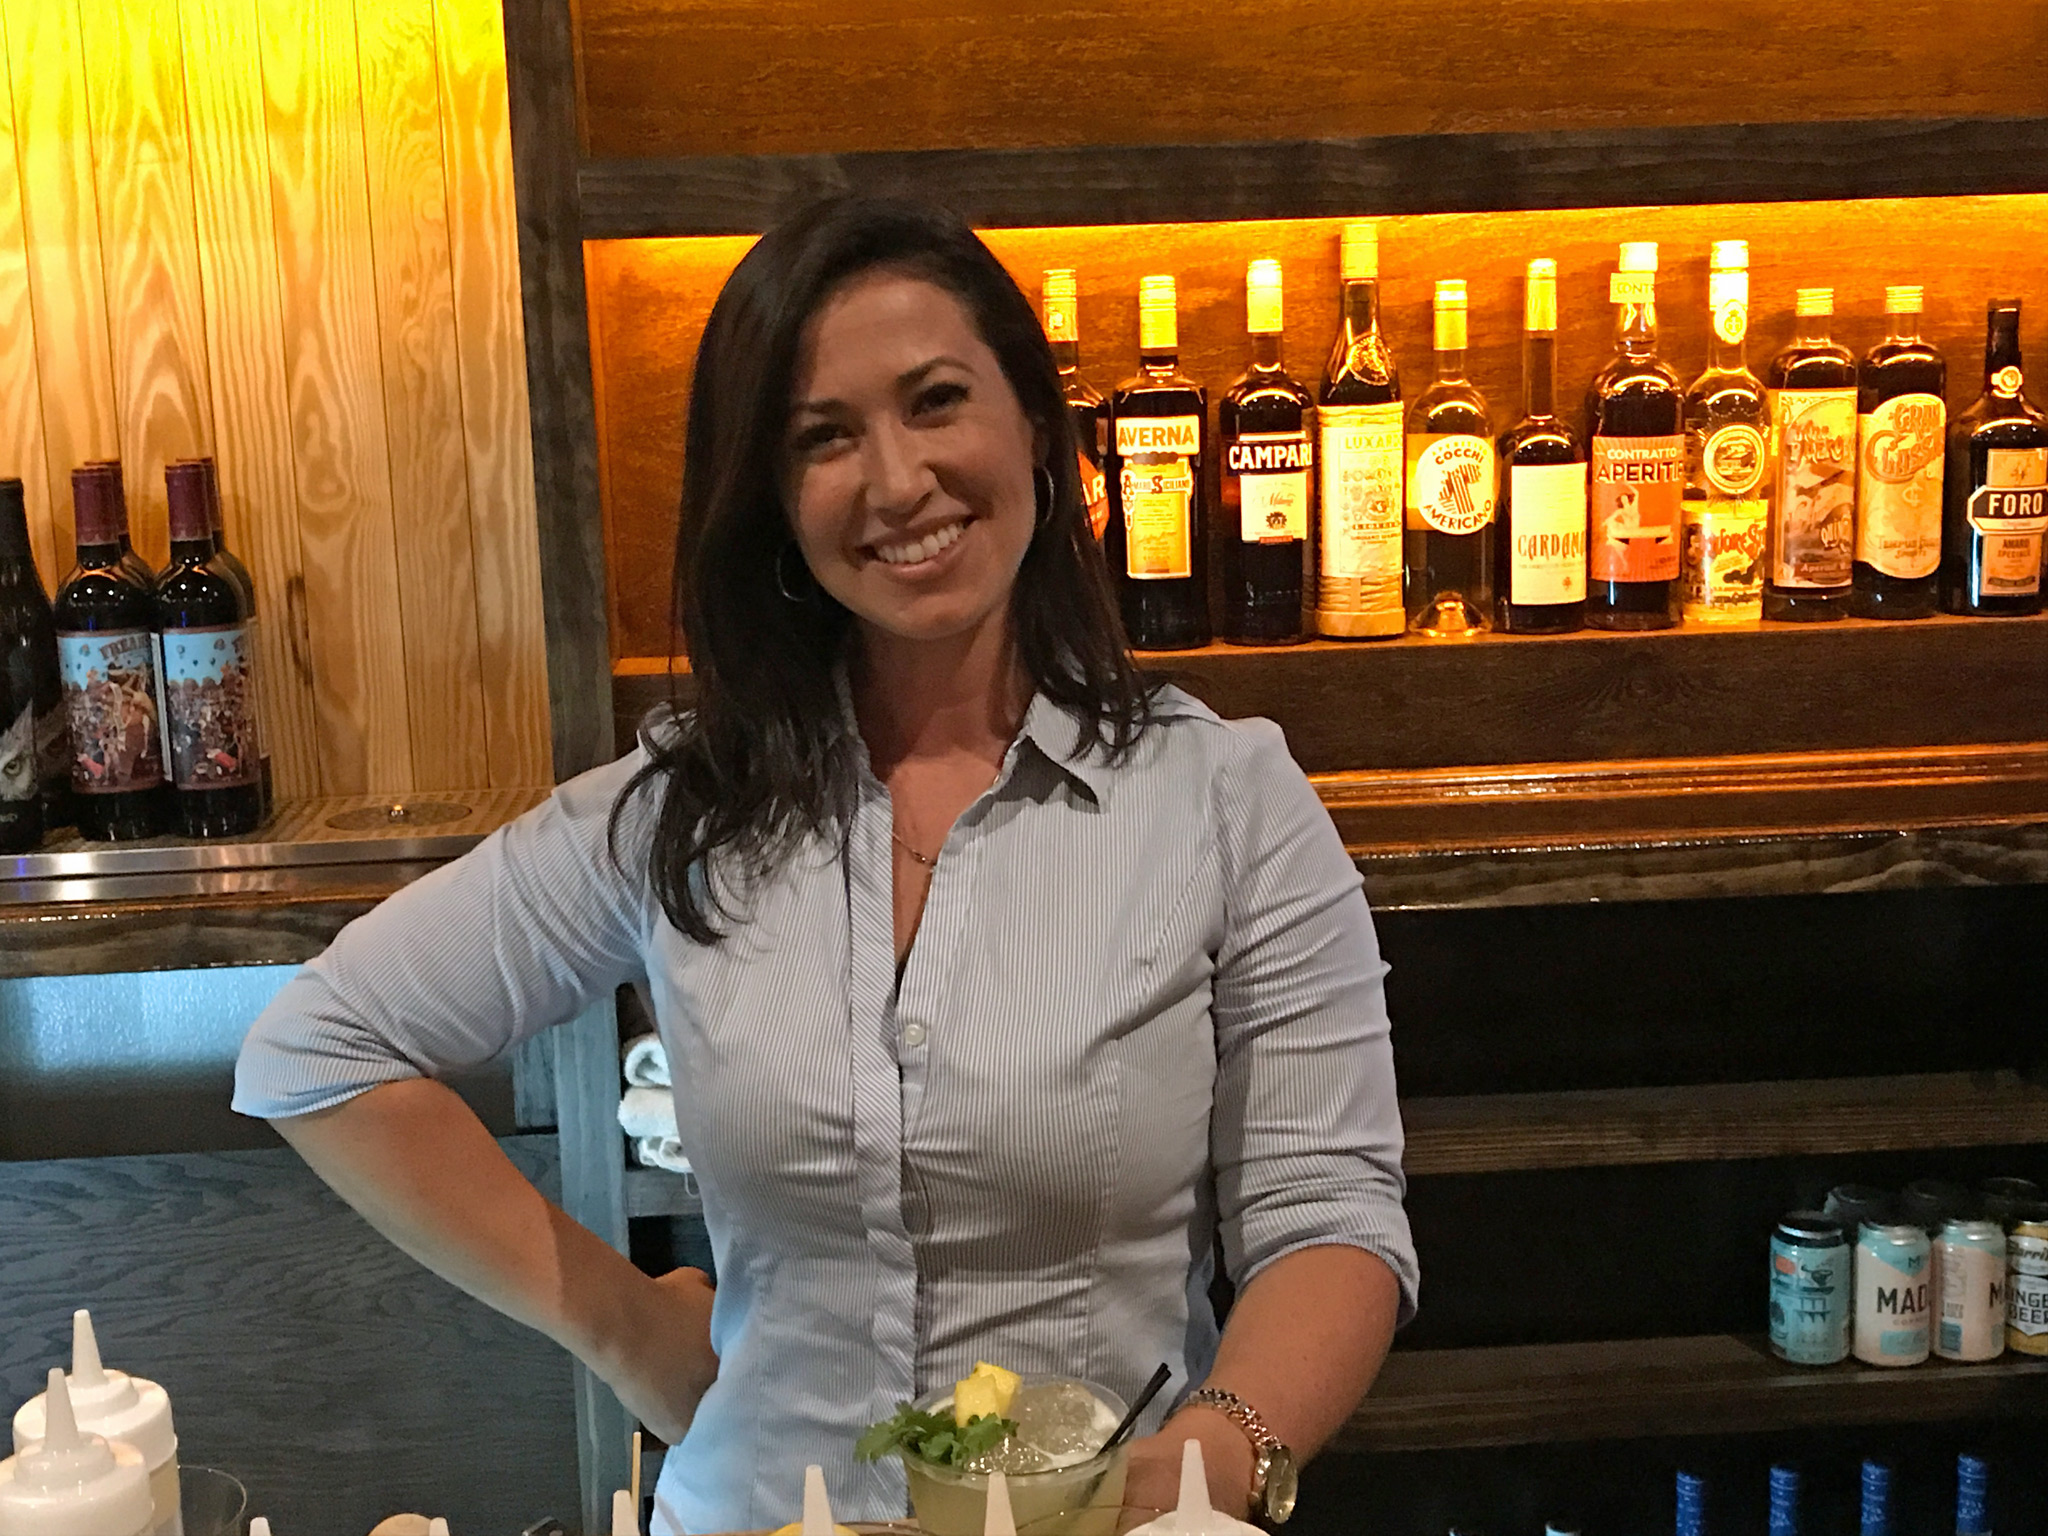 Meghan Clarke - Copper Shaker Liaison for St. Pete Foodies